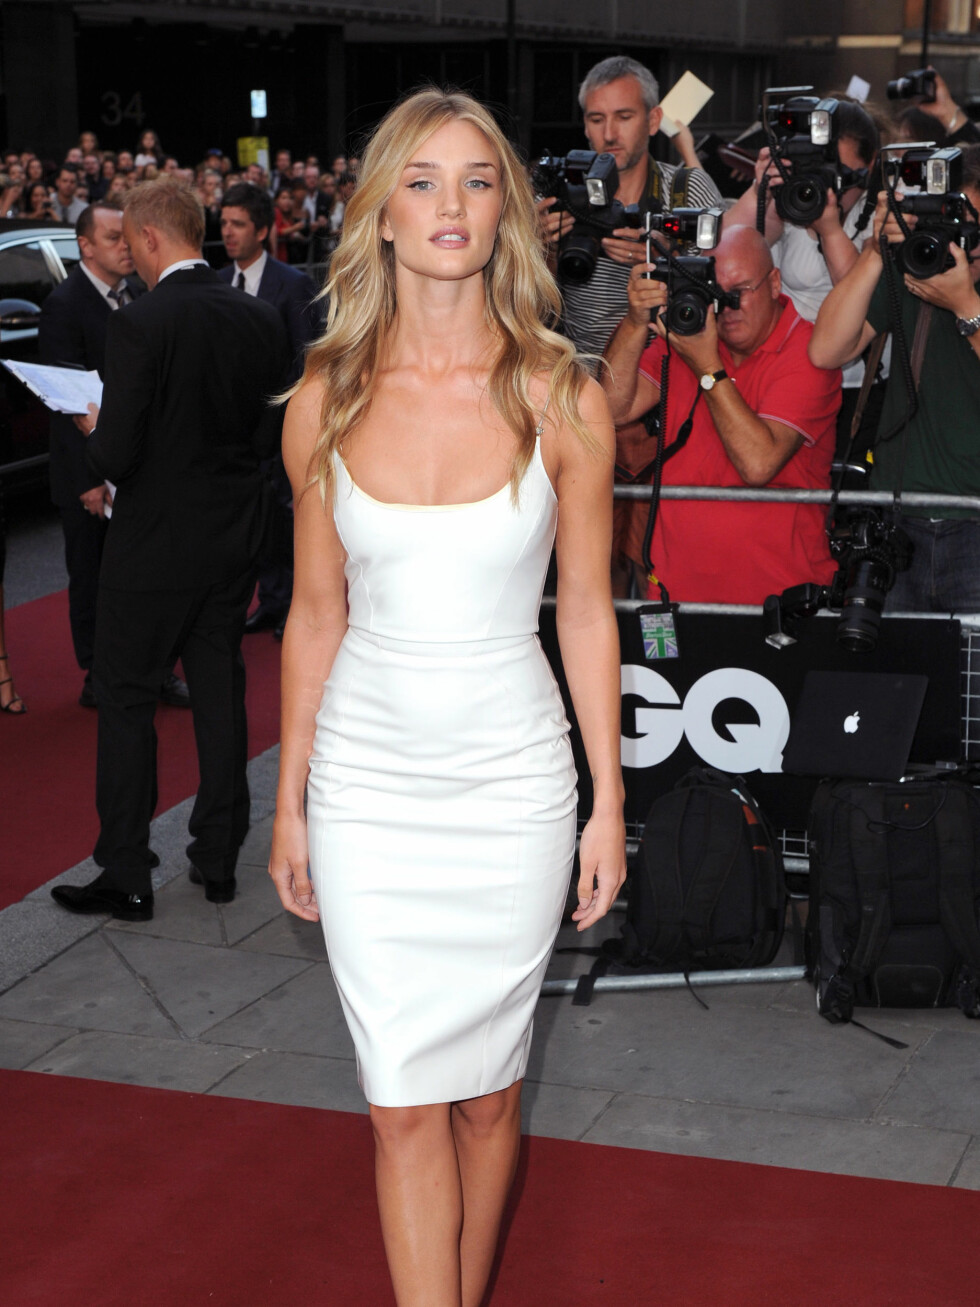 Rosie Huntington-Whiteley Foto: WireImage/Getty Images/All Over Press